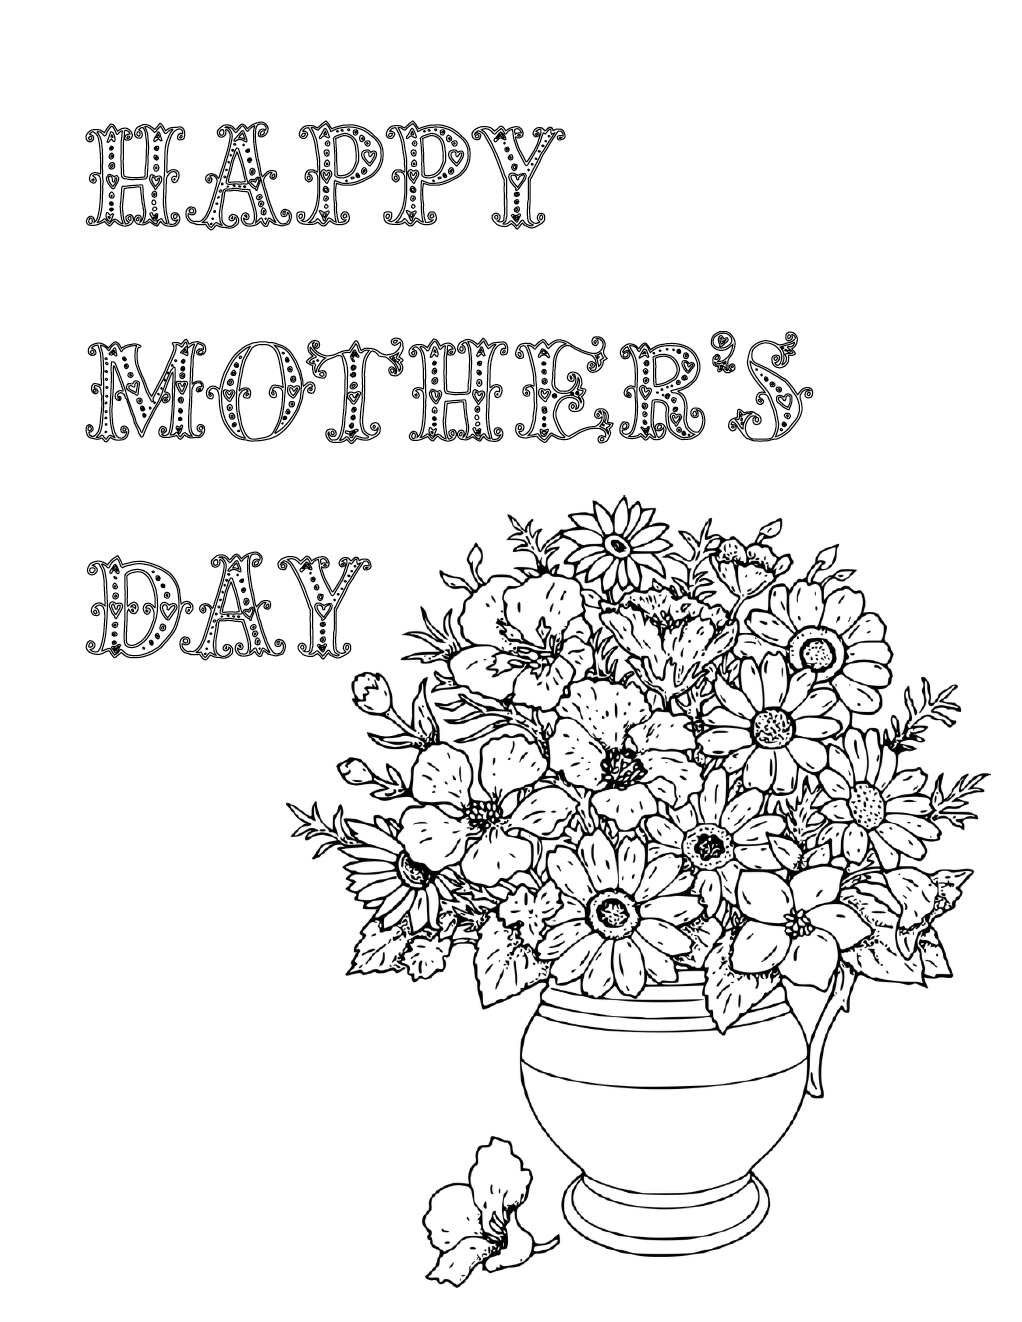 910 Top Cute Coloring Pages For Mom Download Free Images